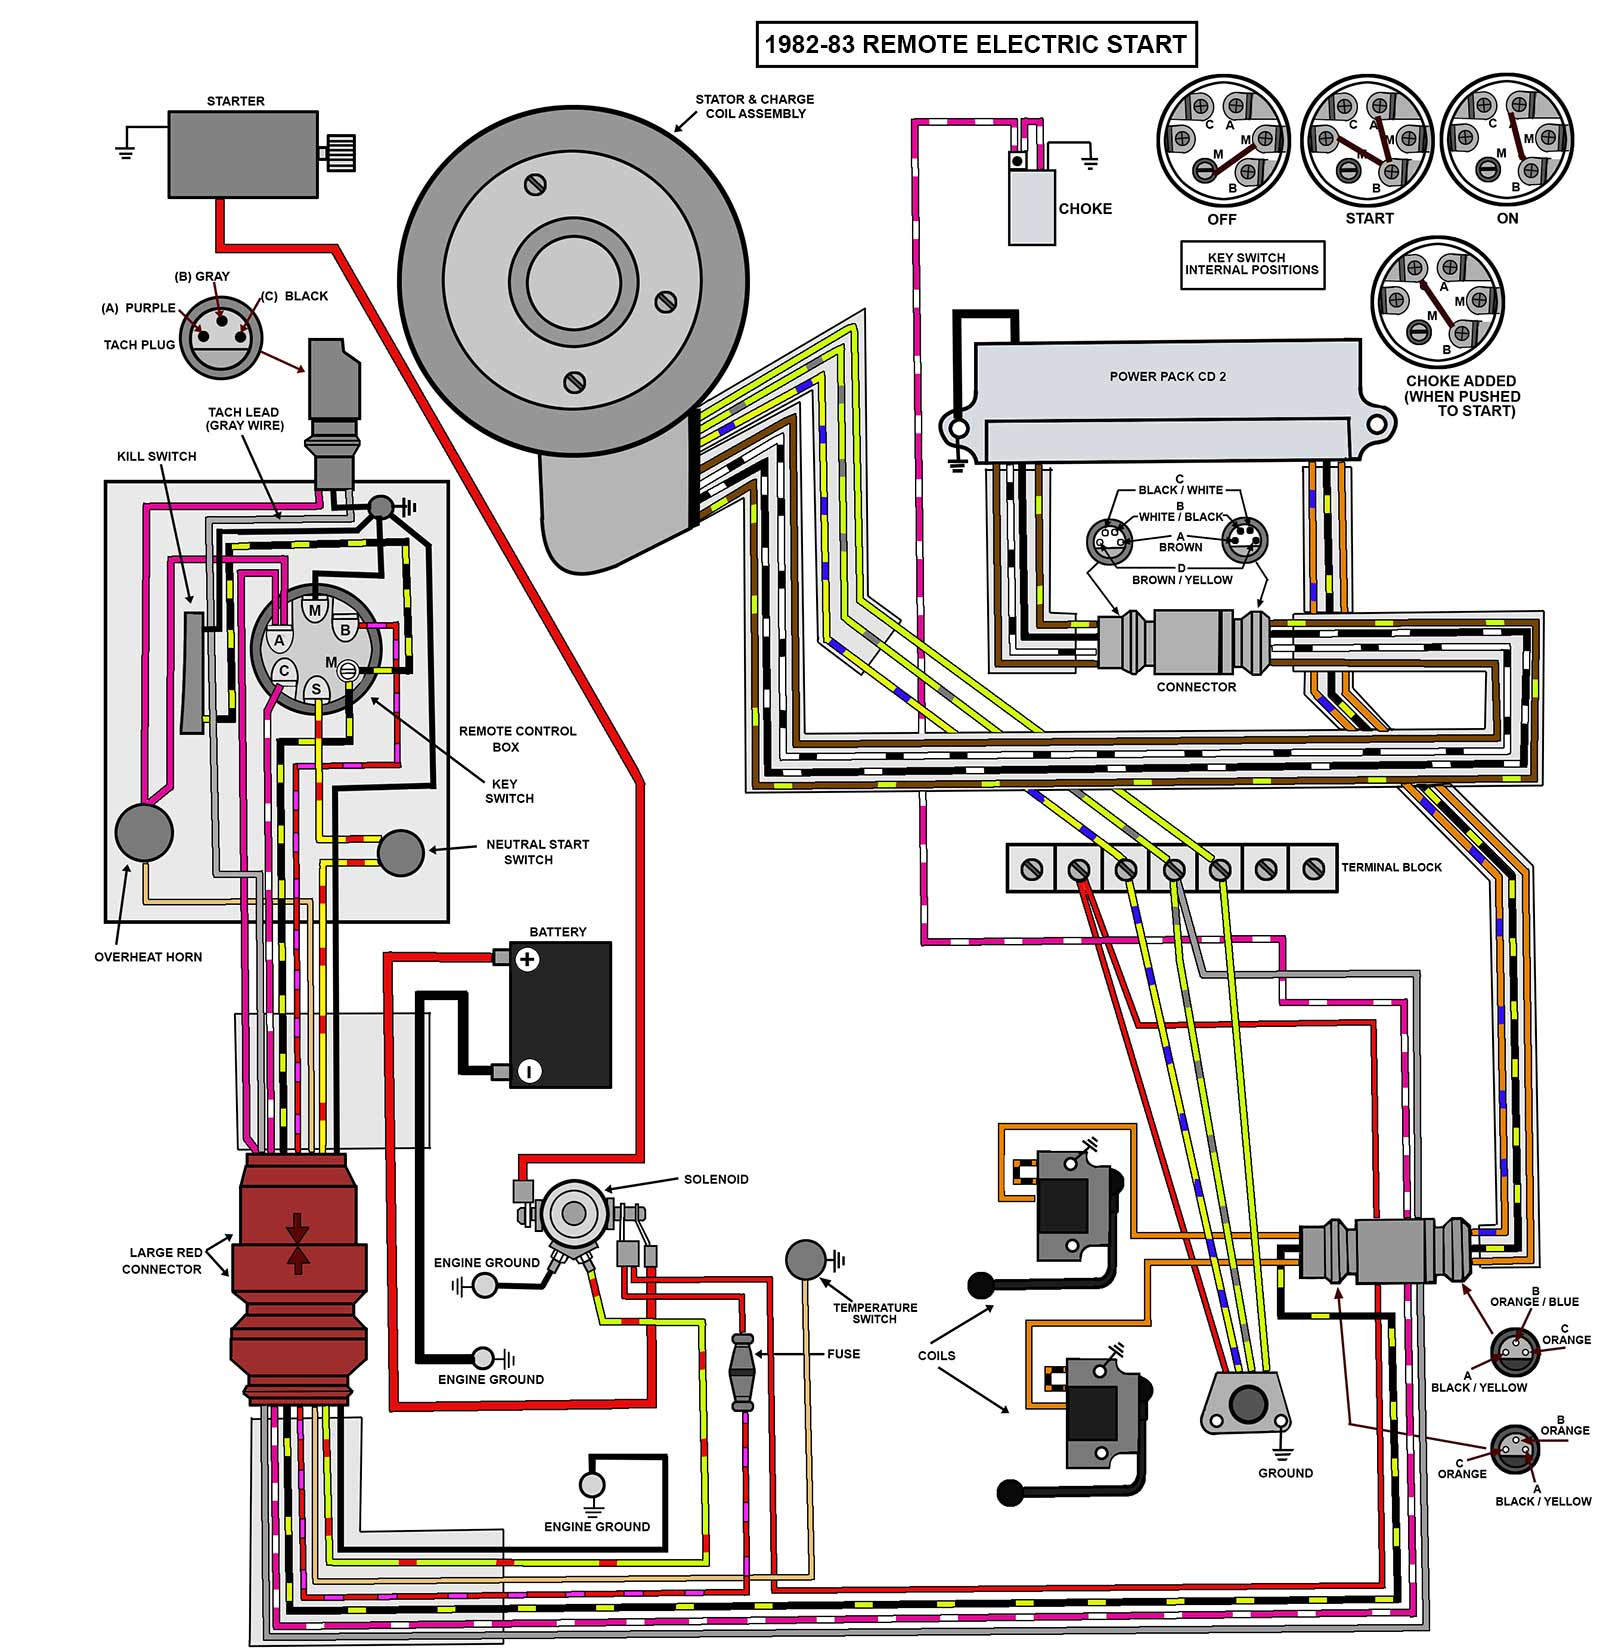 25_35_82 83_elec remote mastertech marine evinrude johnson outboard wiring diagrams Yamaha Outboard Wiring Harness Diagram at honlapkeszites.co